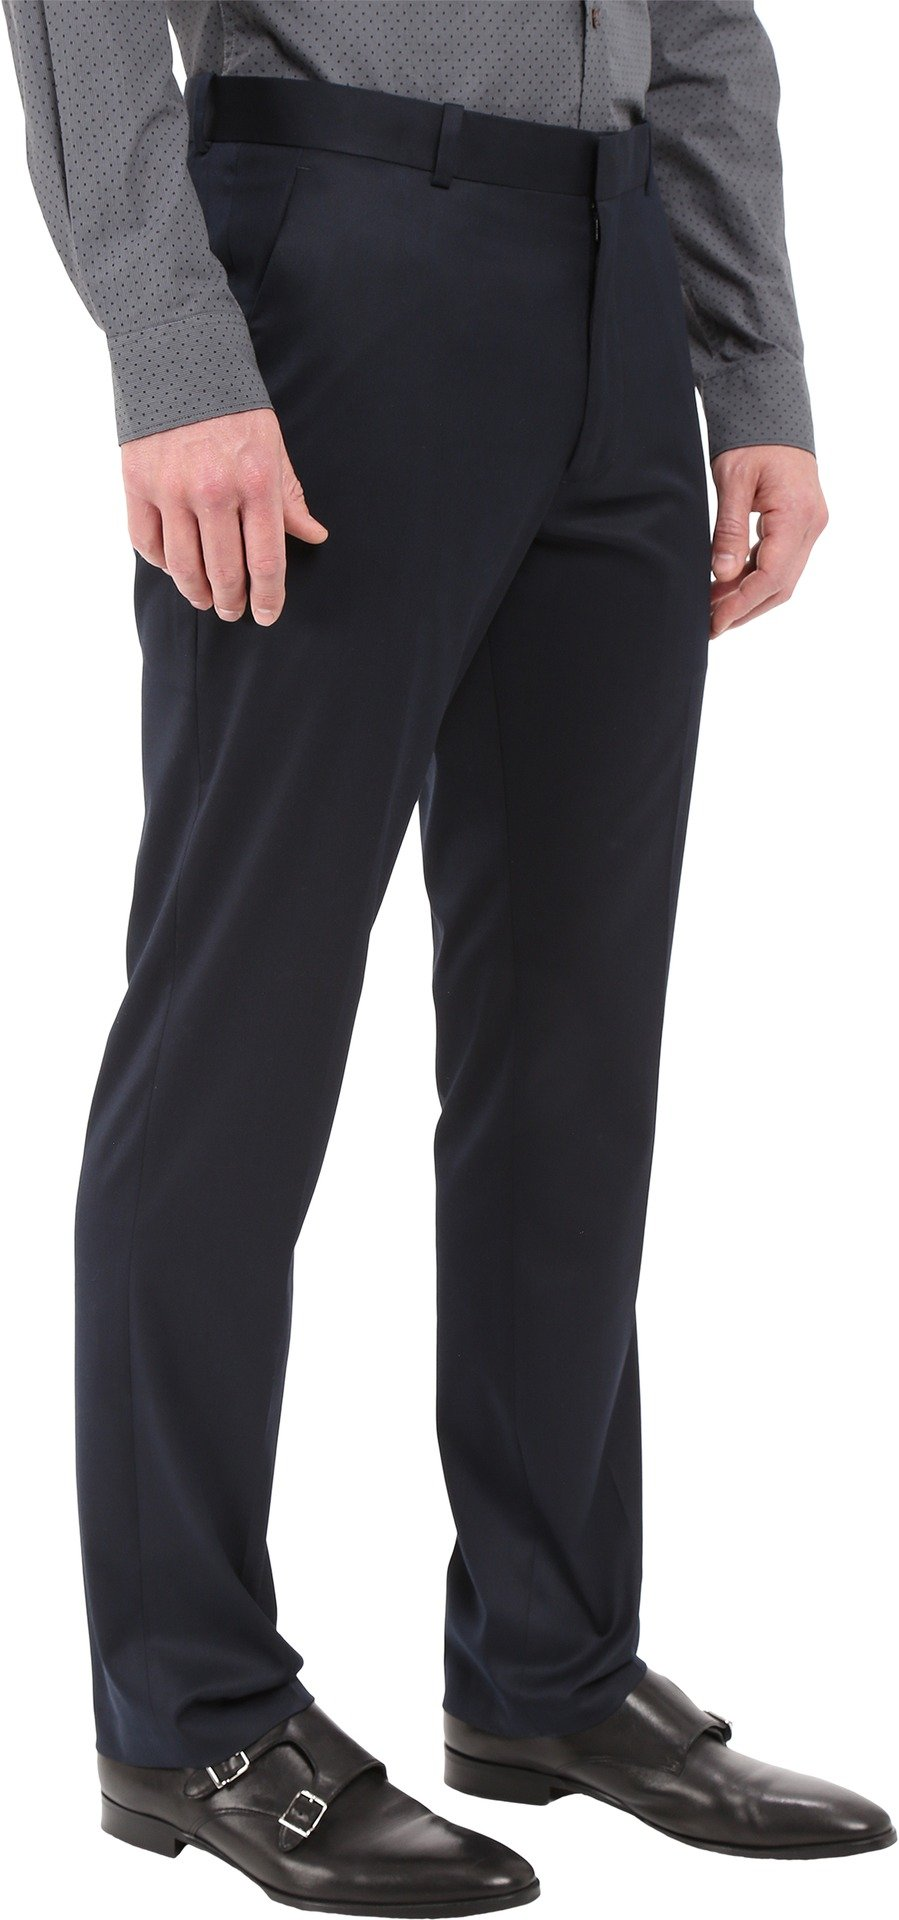 Perry Ellis Men's Solid Slim Fit Pant, Navy, 34x32